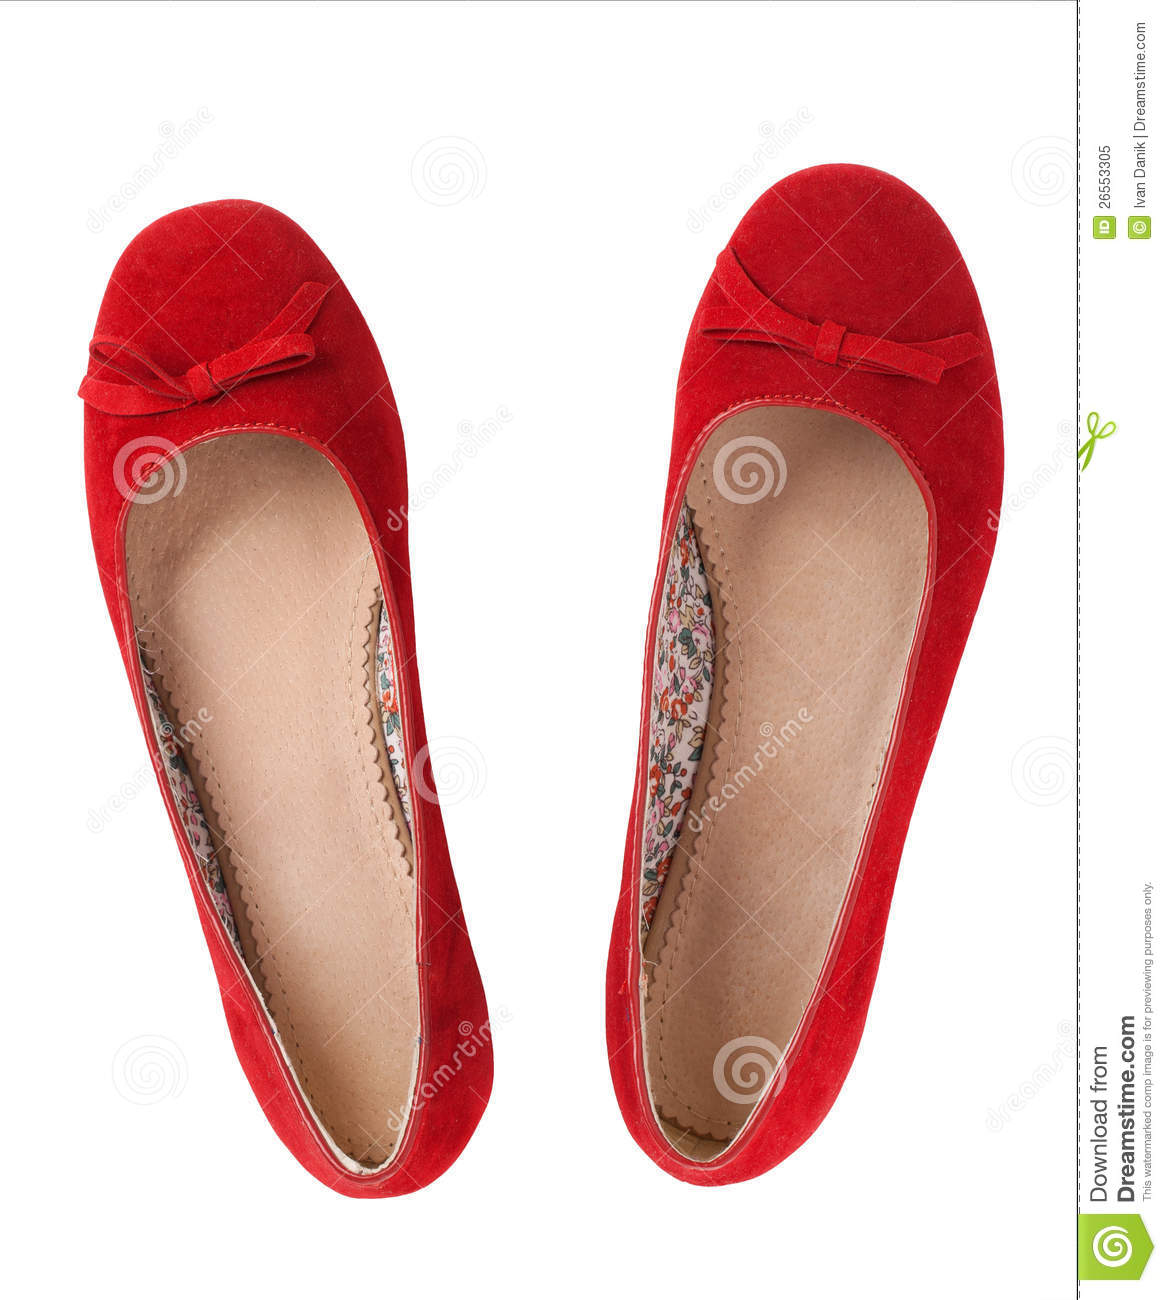 cc2f509804b Red flat shoes stock image. Image of shoe